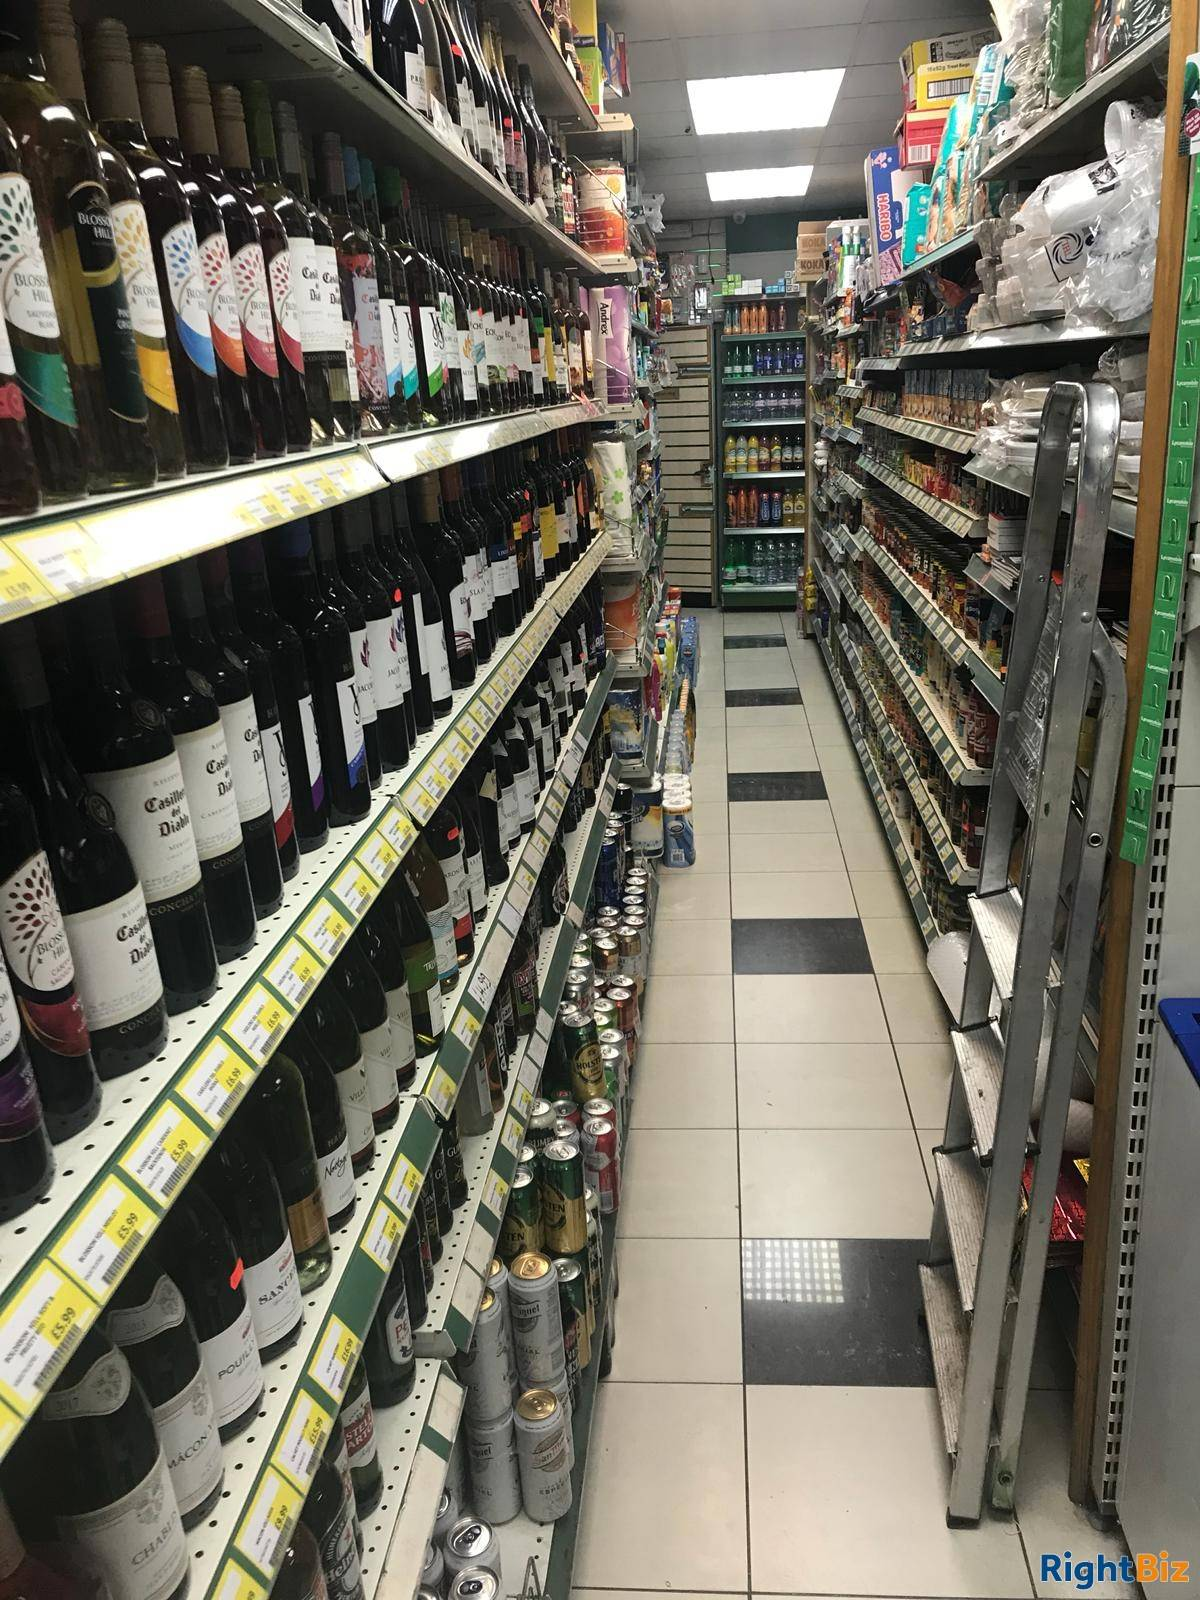 Convenient Store For sale in London Leasehold  - Image 1